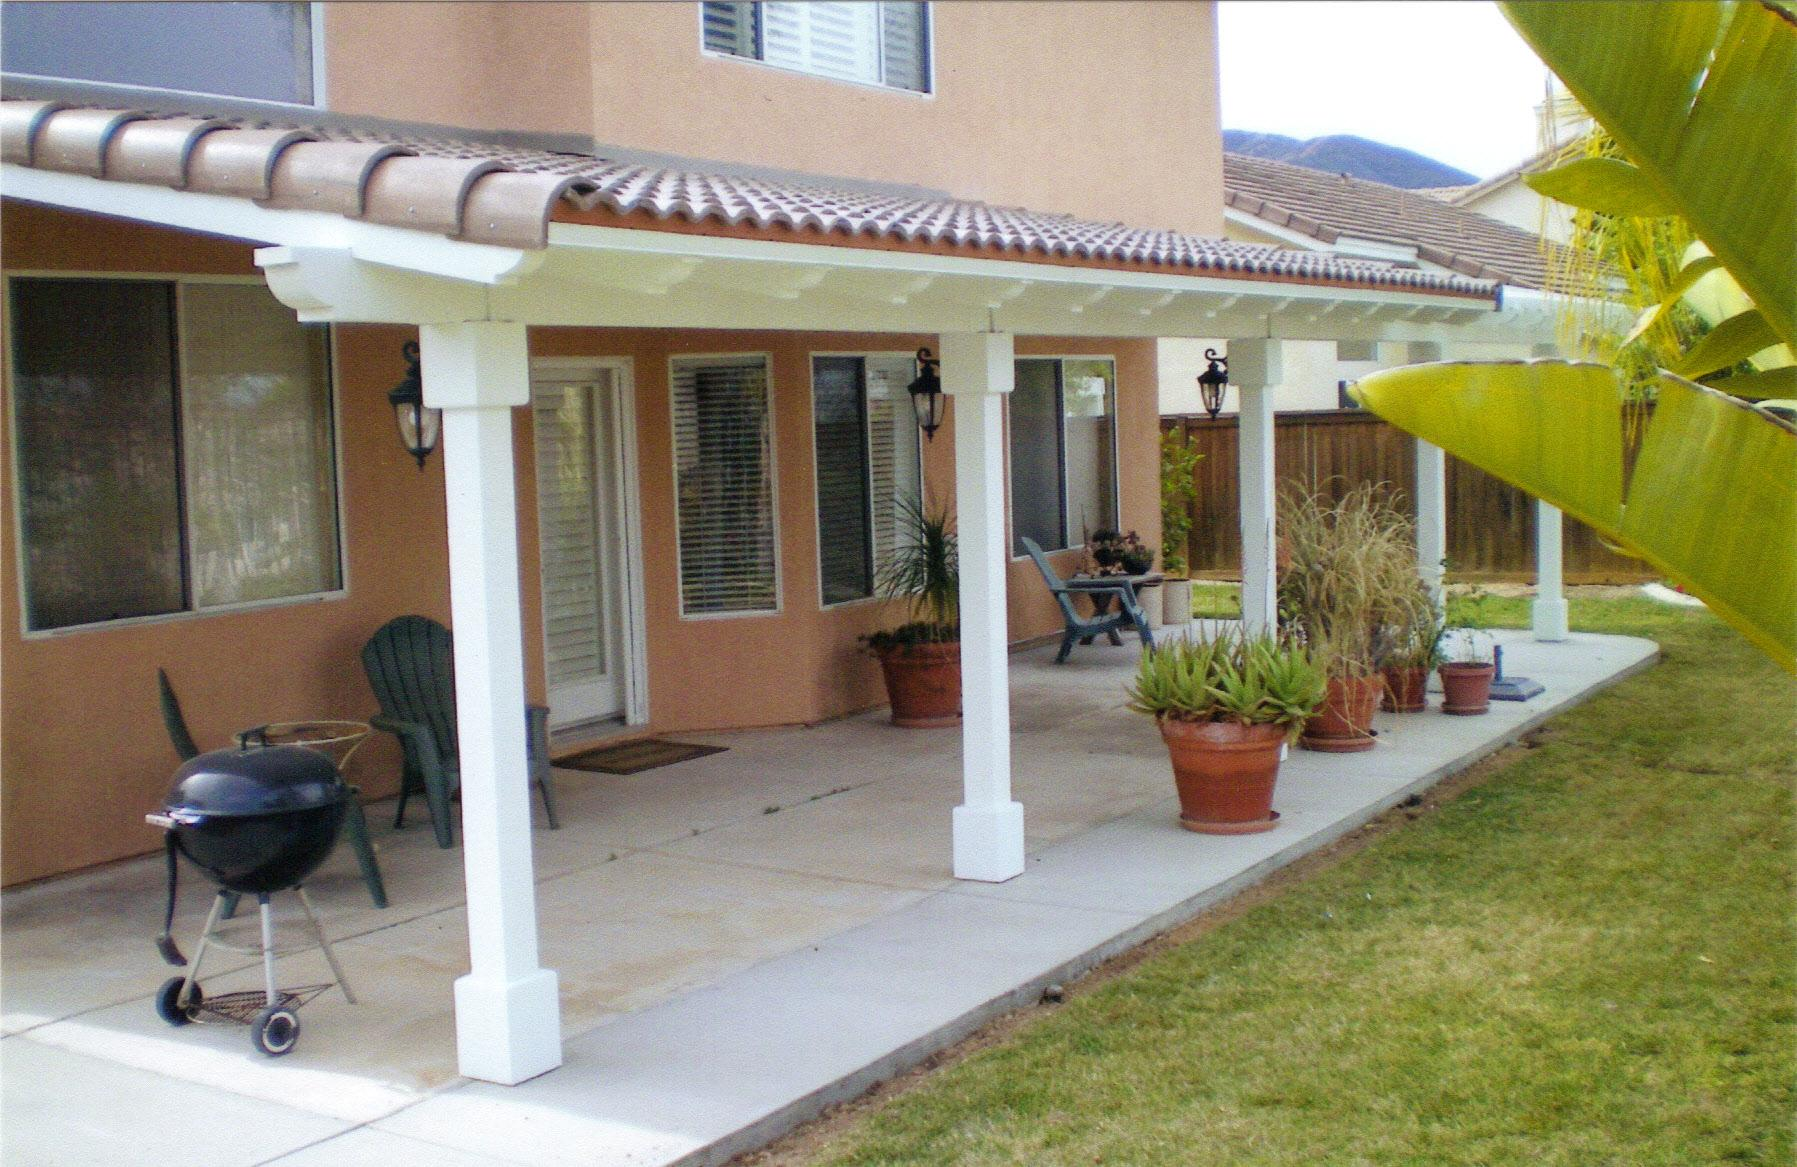 Backyard Patio Covers: From Usefulness To Style - HomesFeed on Backyard Patio Cover Ideas  id=48227